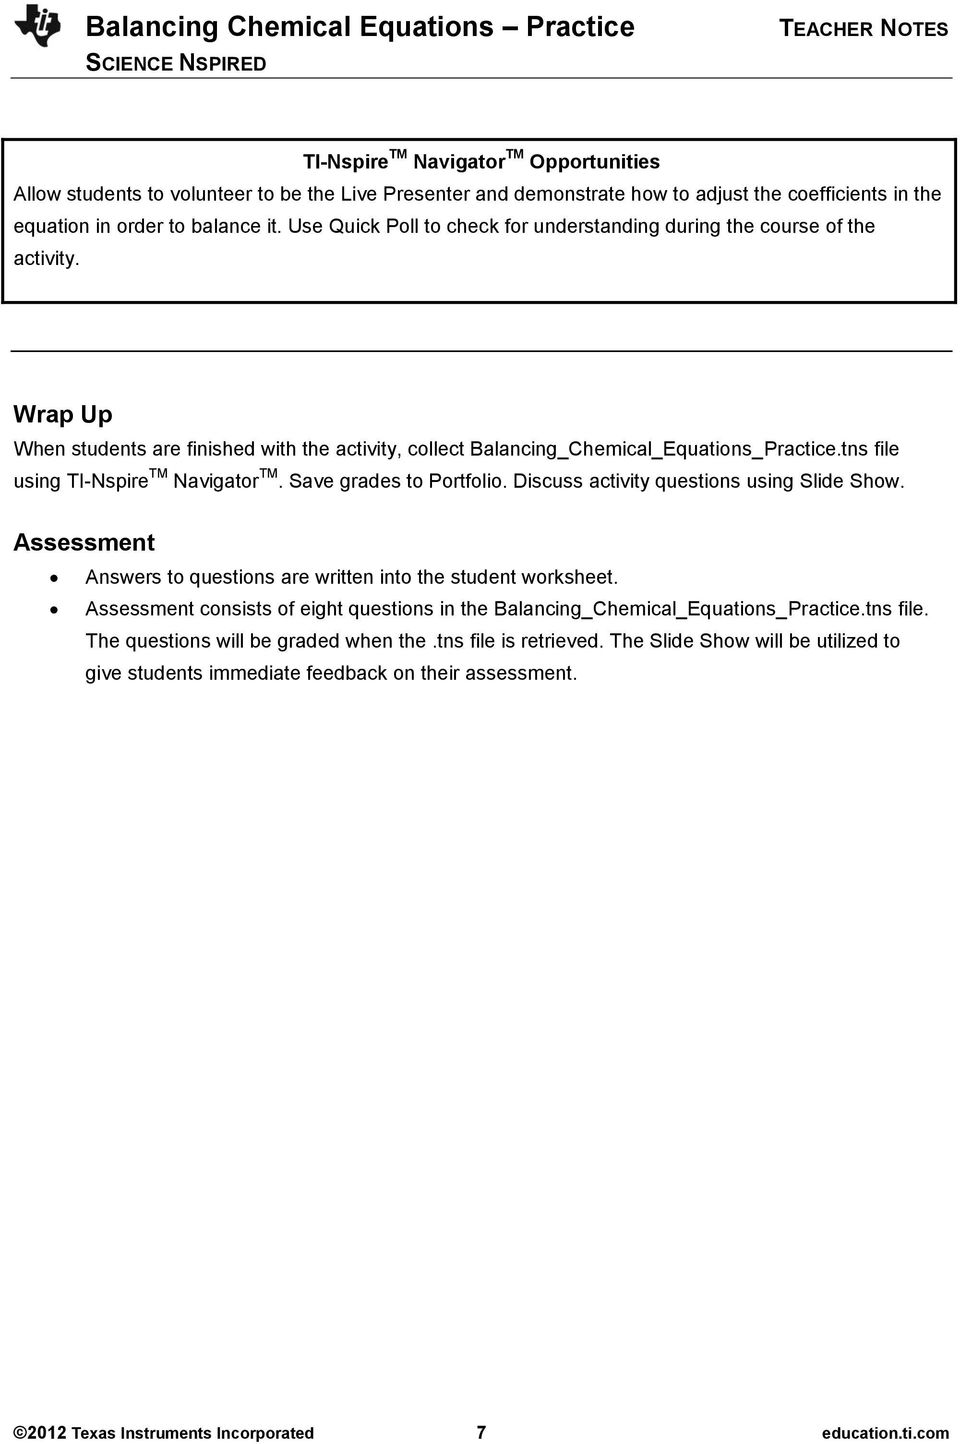 introduction research essay unity